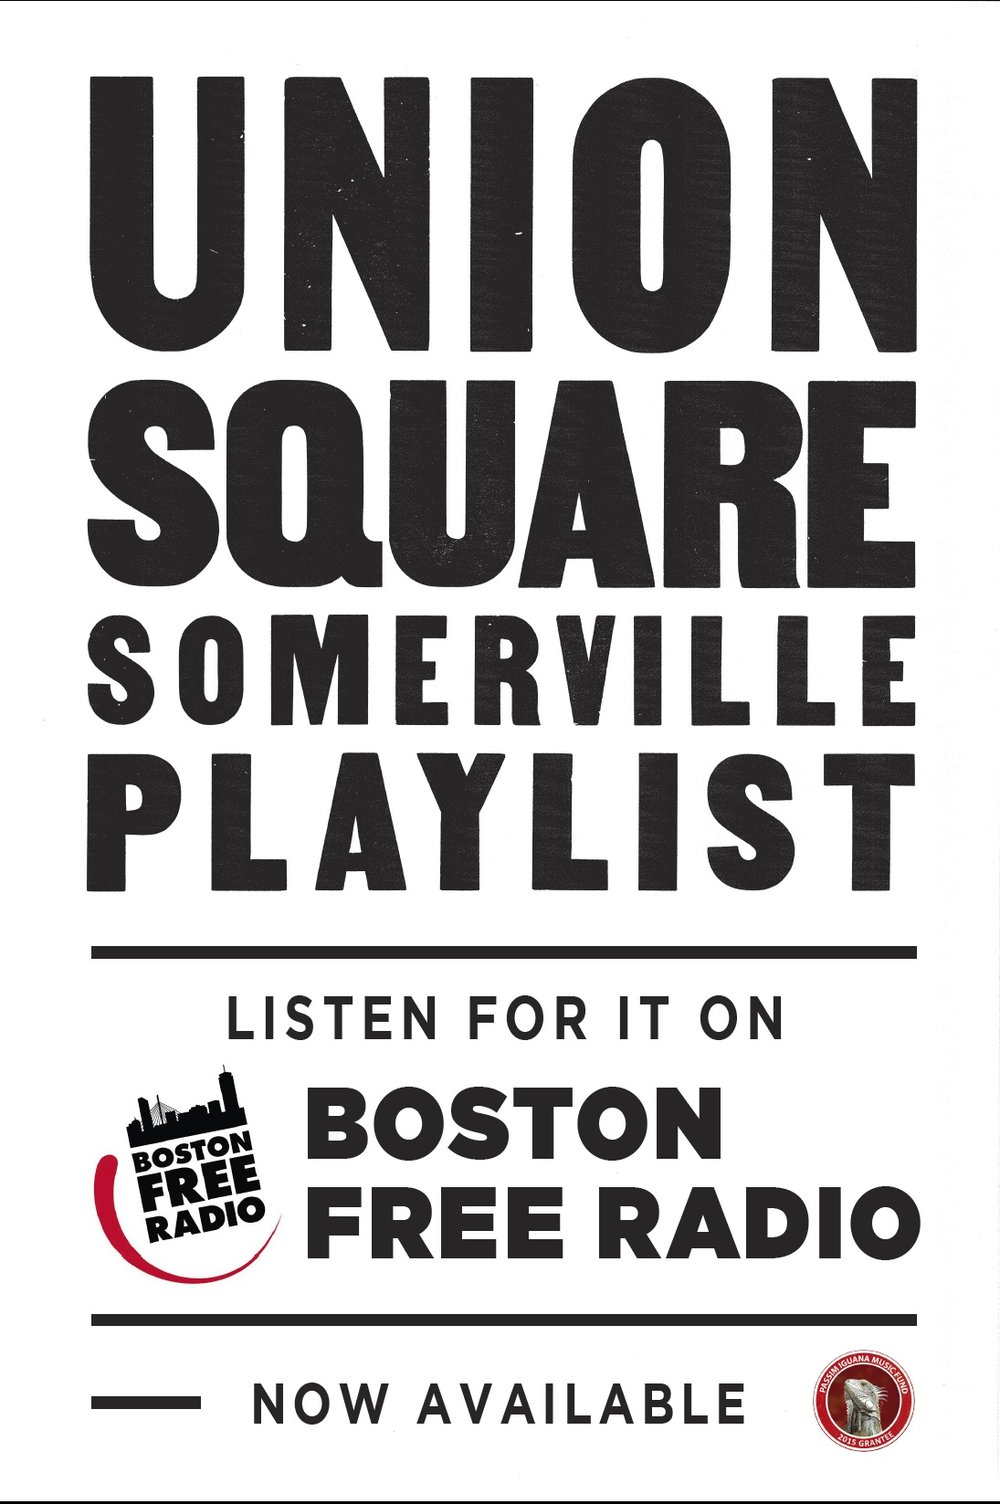 Boston Free Radio Now Availalbe JPG.jpg